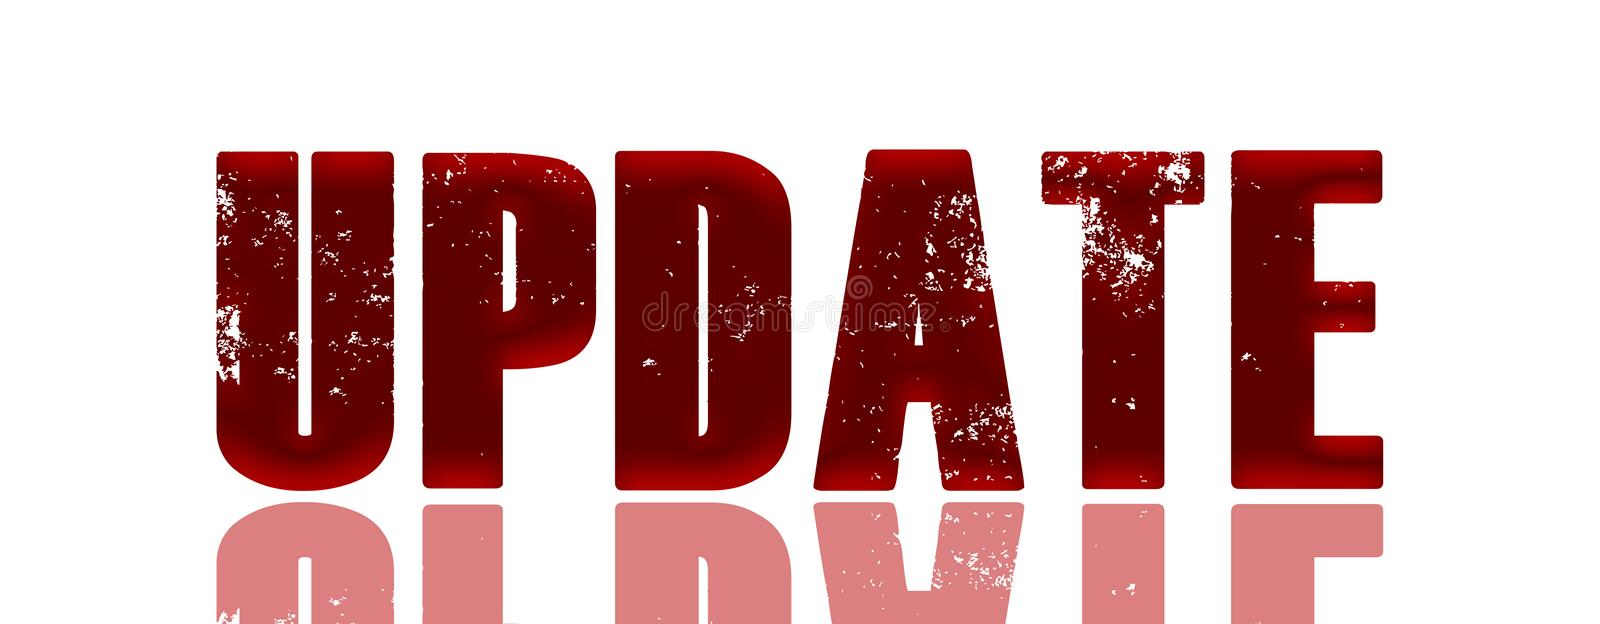 Red update sign royalty free illustration